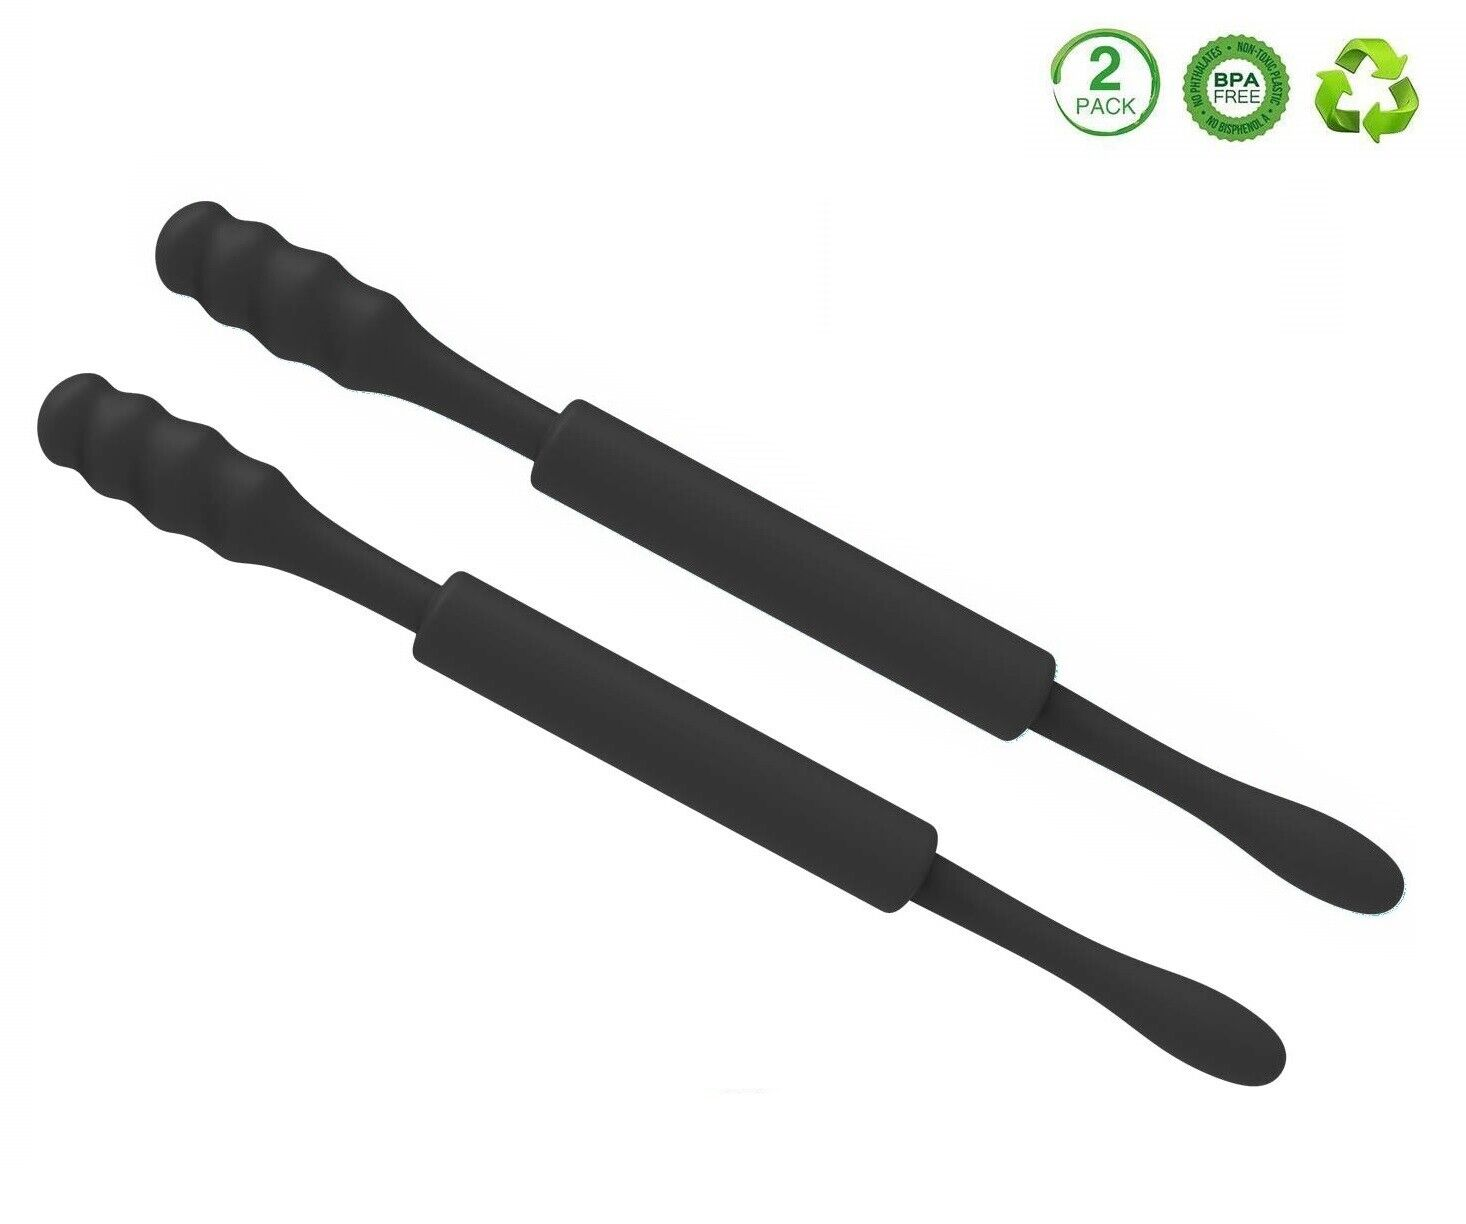 2 Pack Ear Wax Cleaner Swab Earwax Makeup Remover Reusable Silicone Tool (Black) Health & Beauty